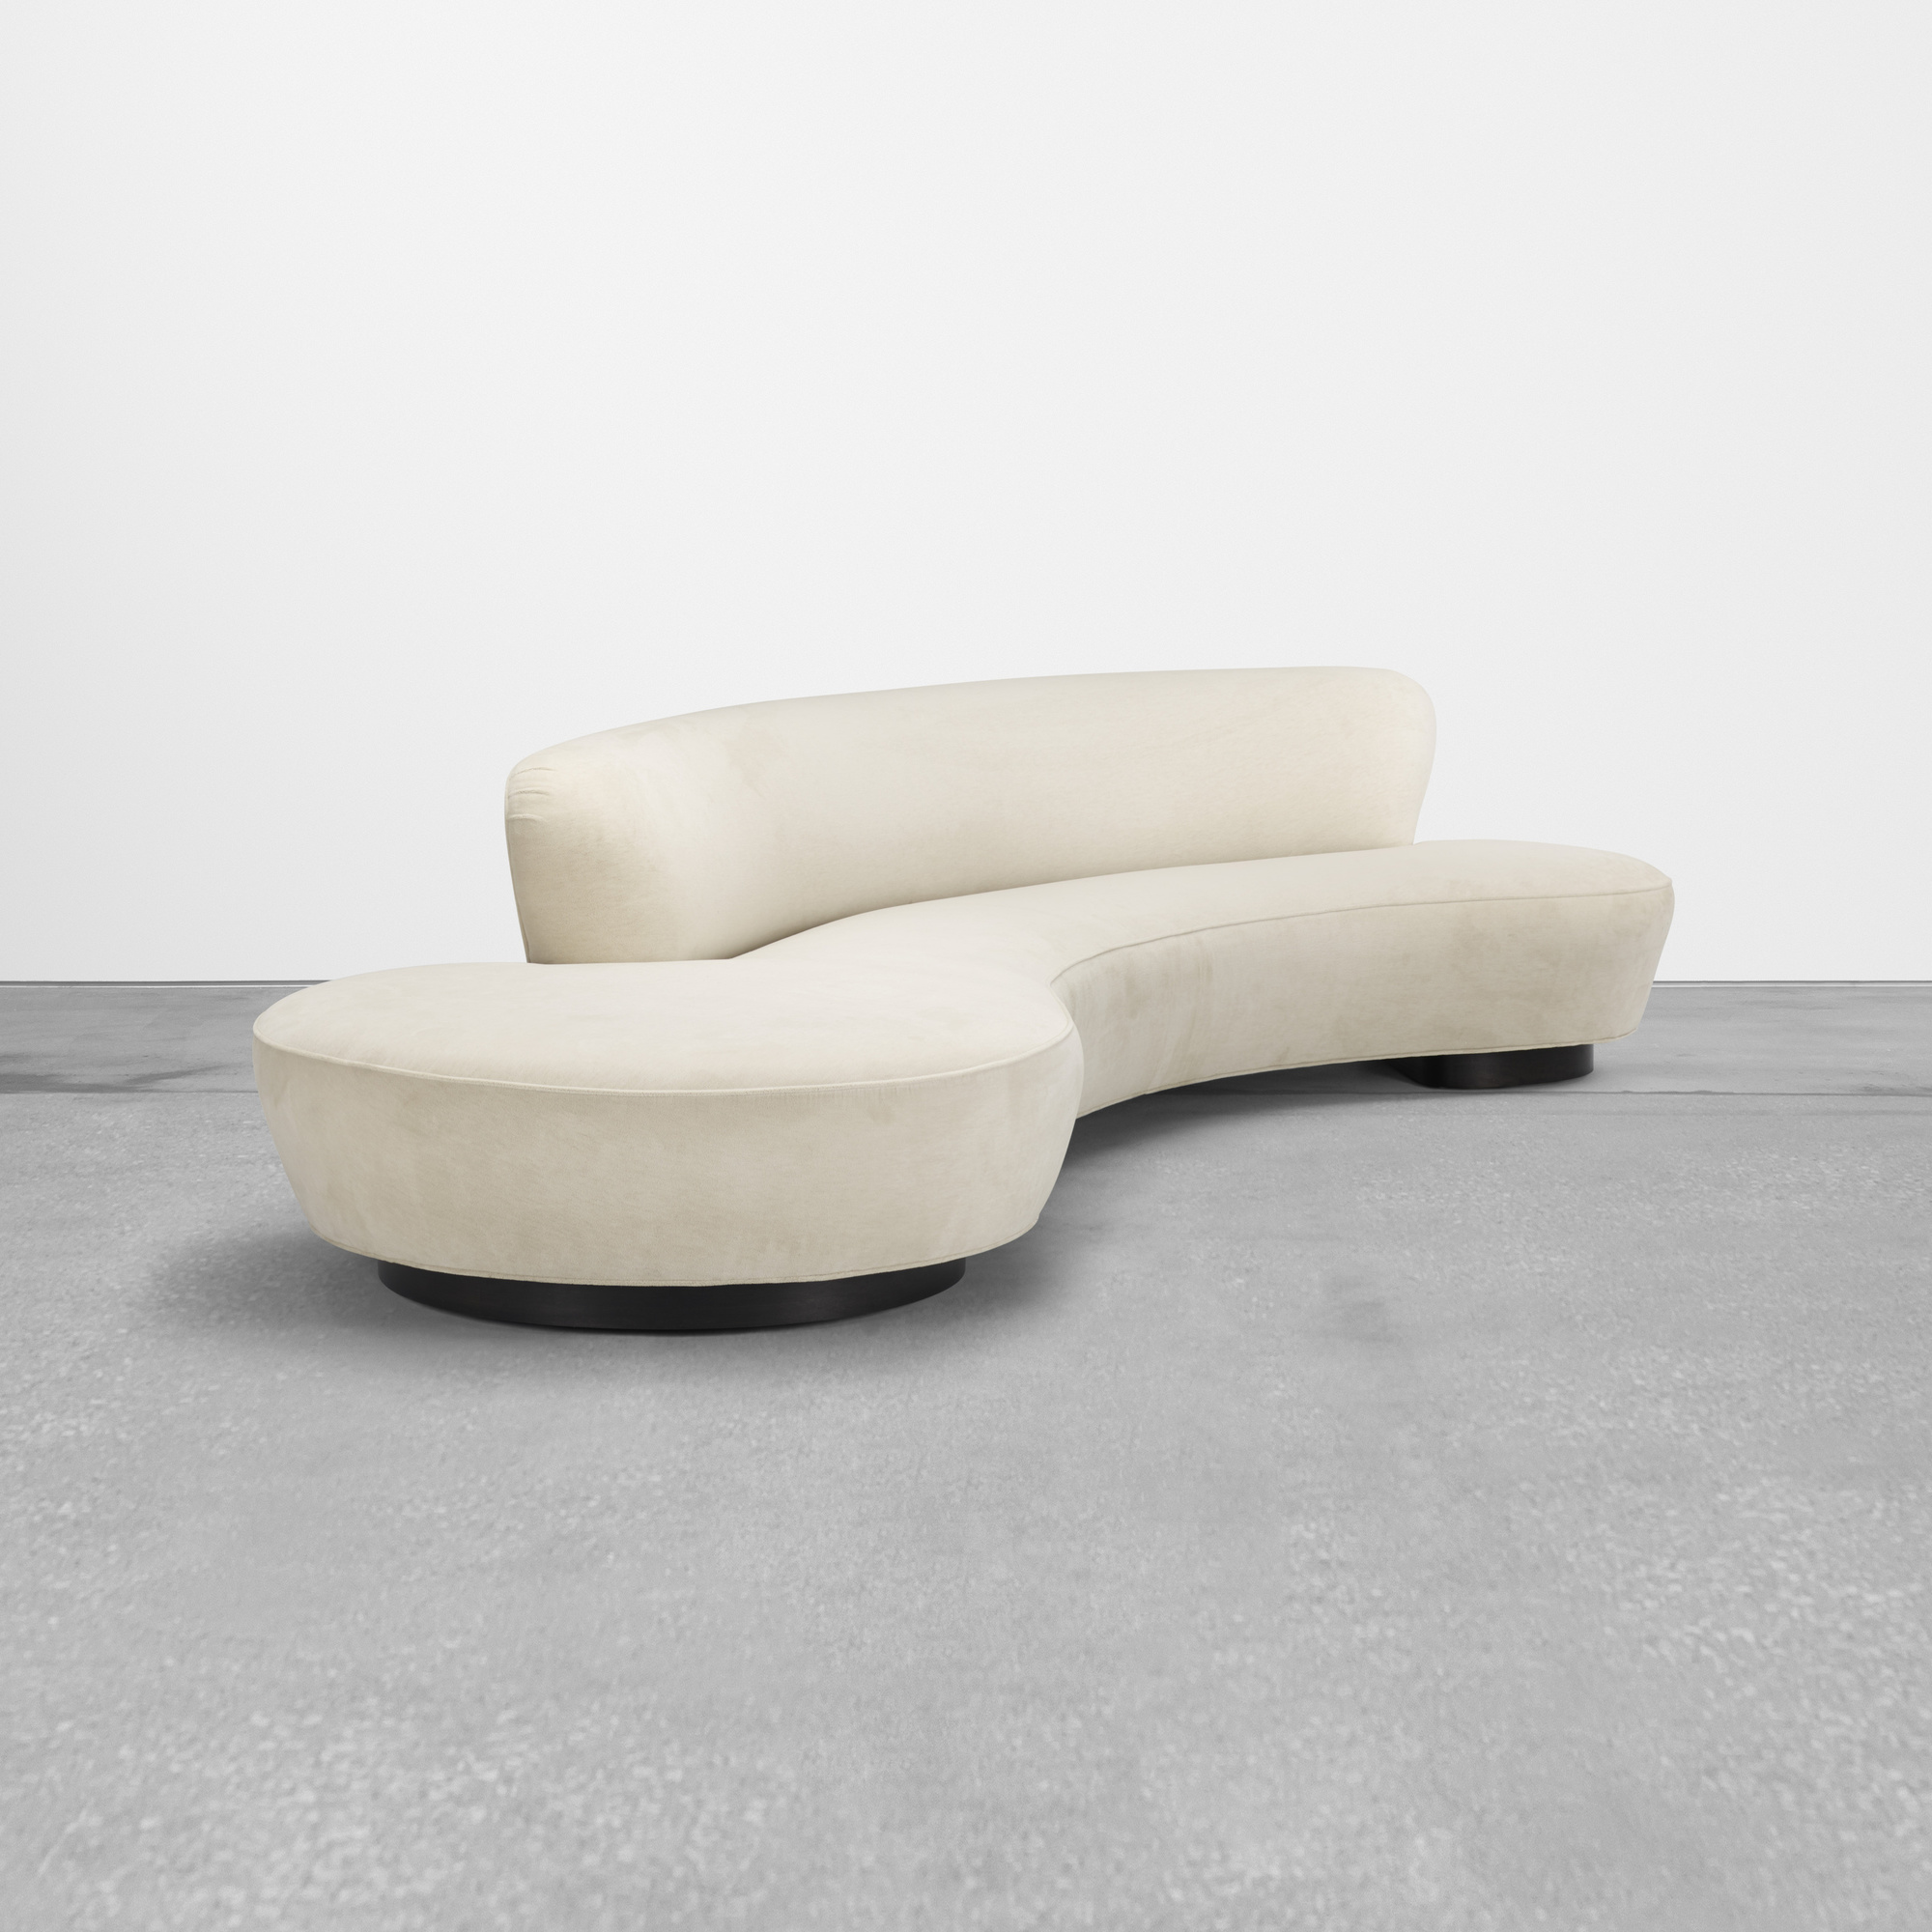 Merveilleux 438: Vladimir Kagan / Serpentine Sofa (1 Of 3)